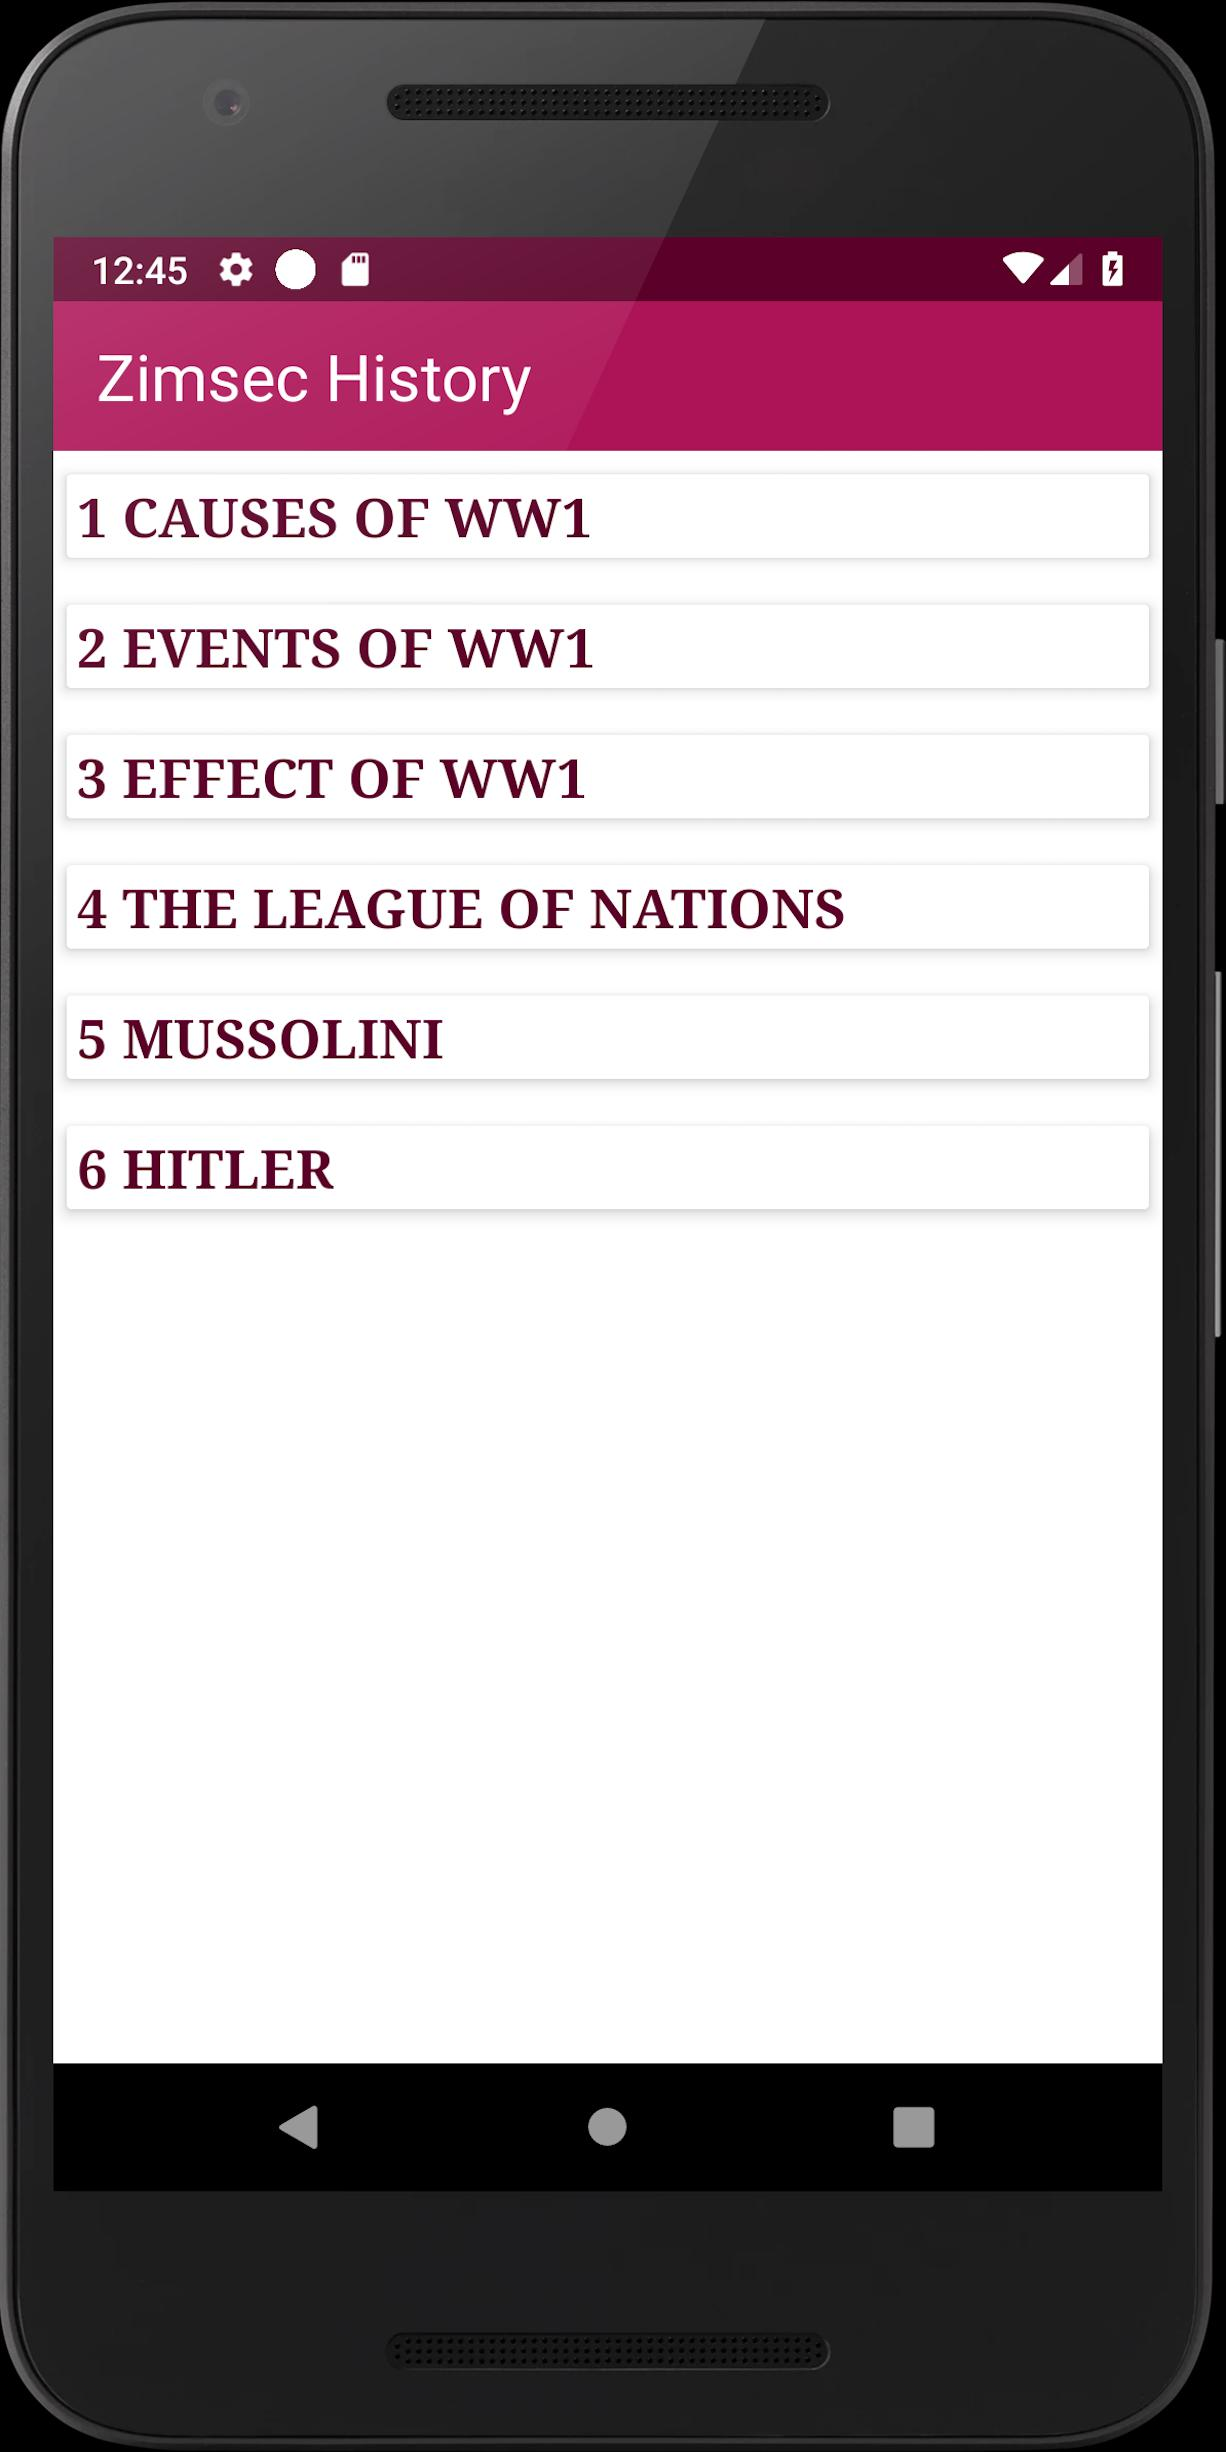 Zimsec History for Android - APK Download